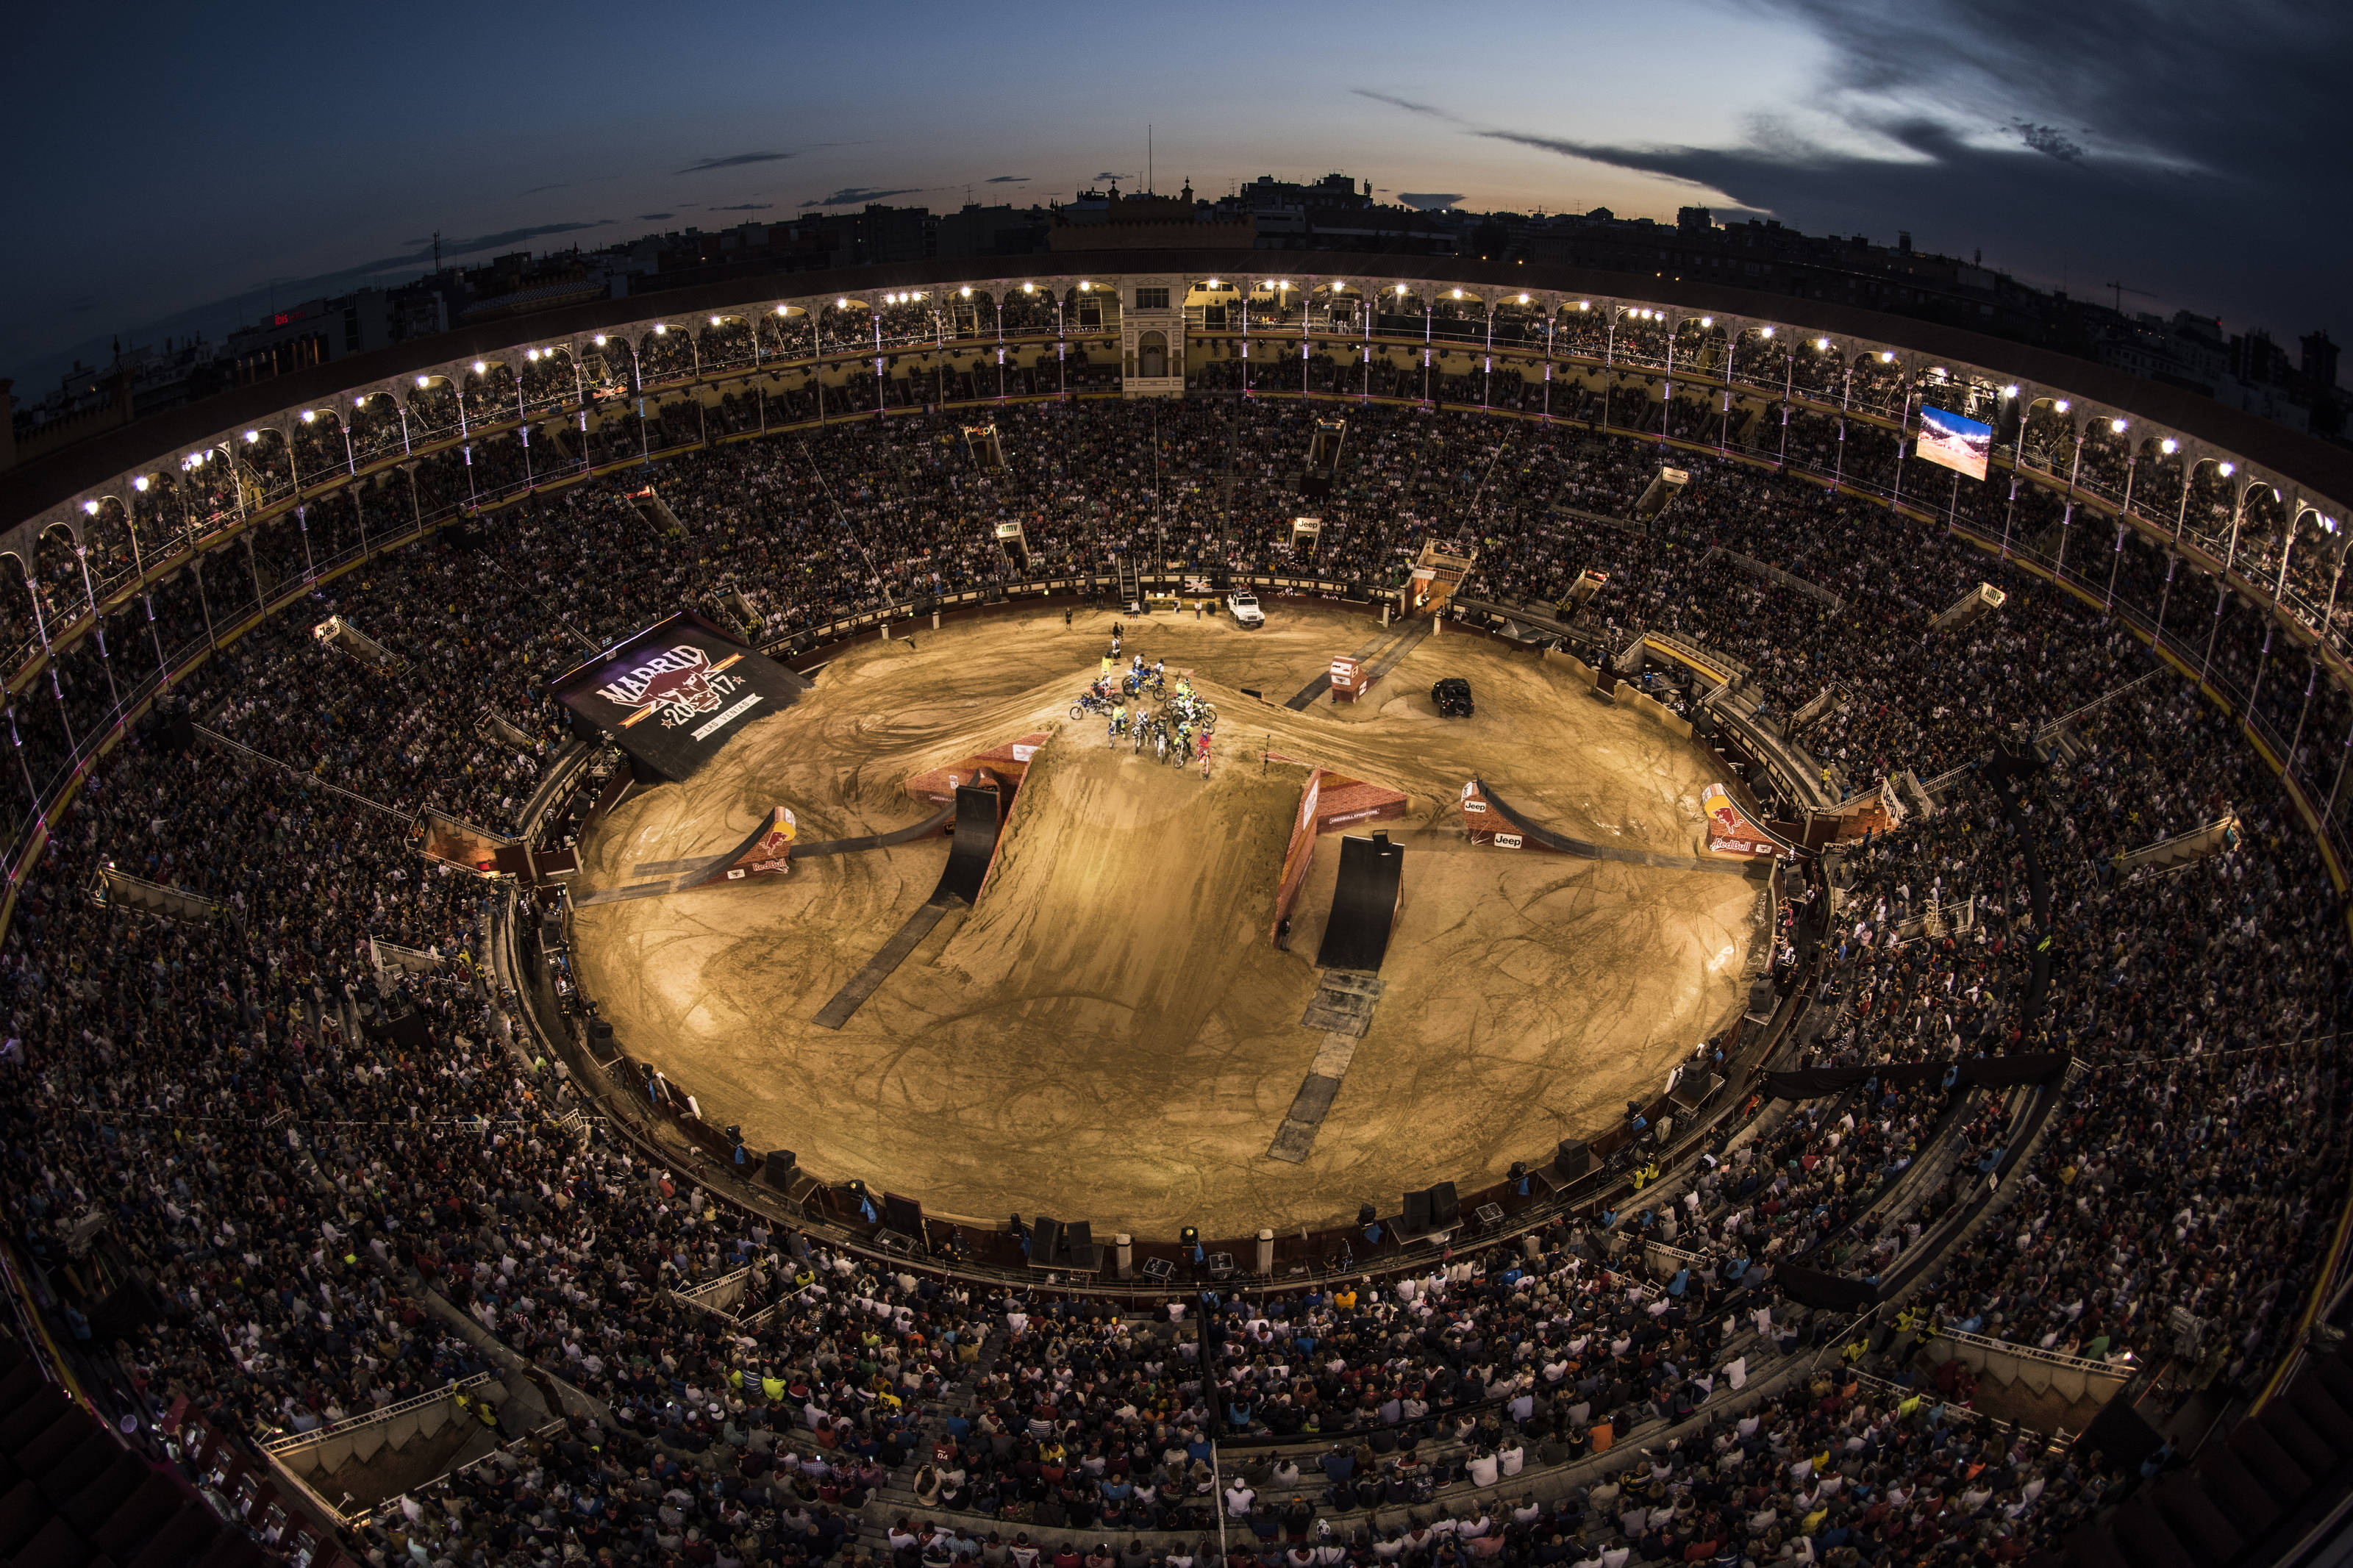 FMX action at it's best at the 2017 Red Bull X-Fighters Madrid event